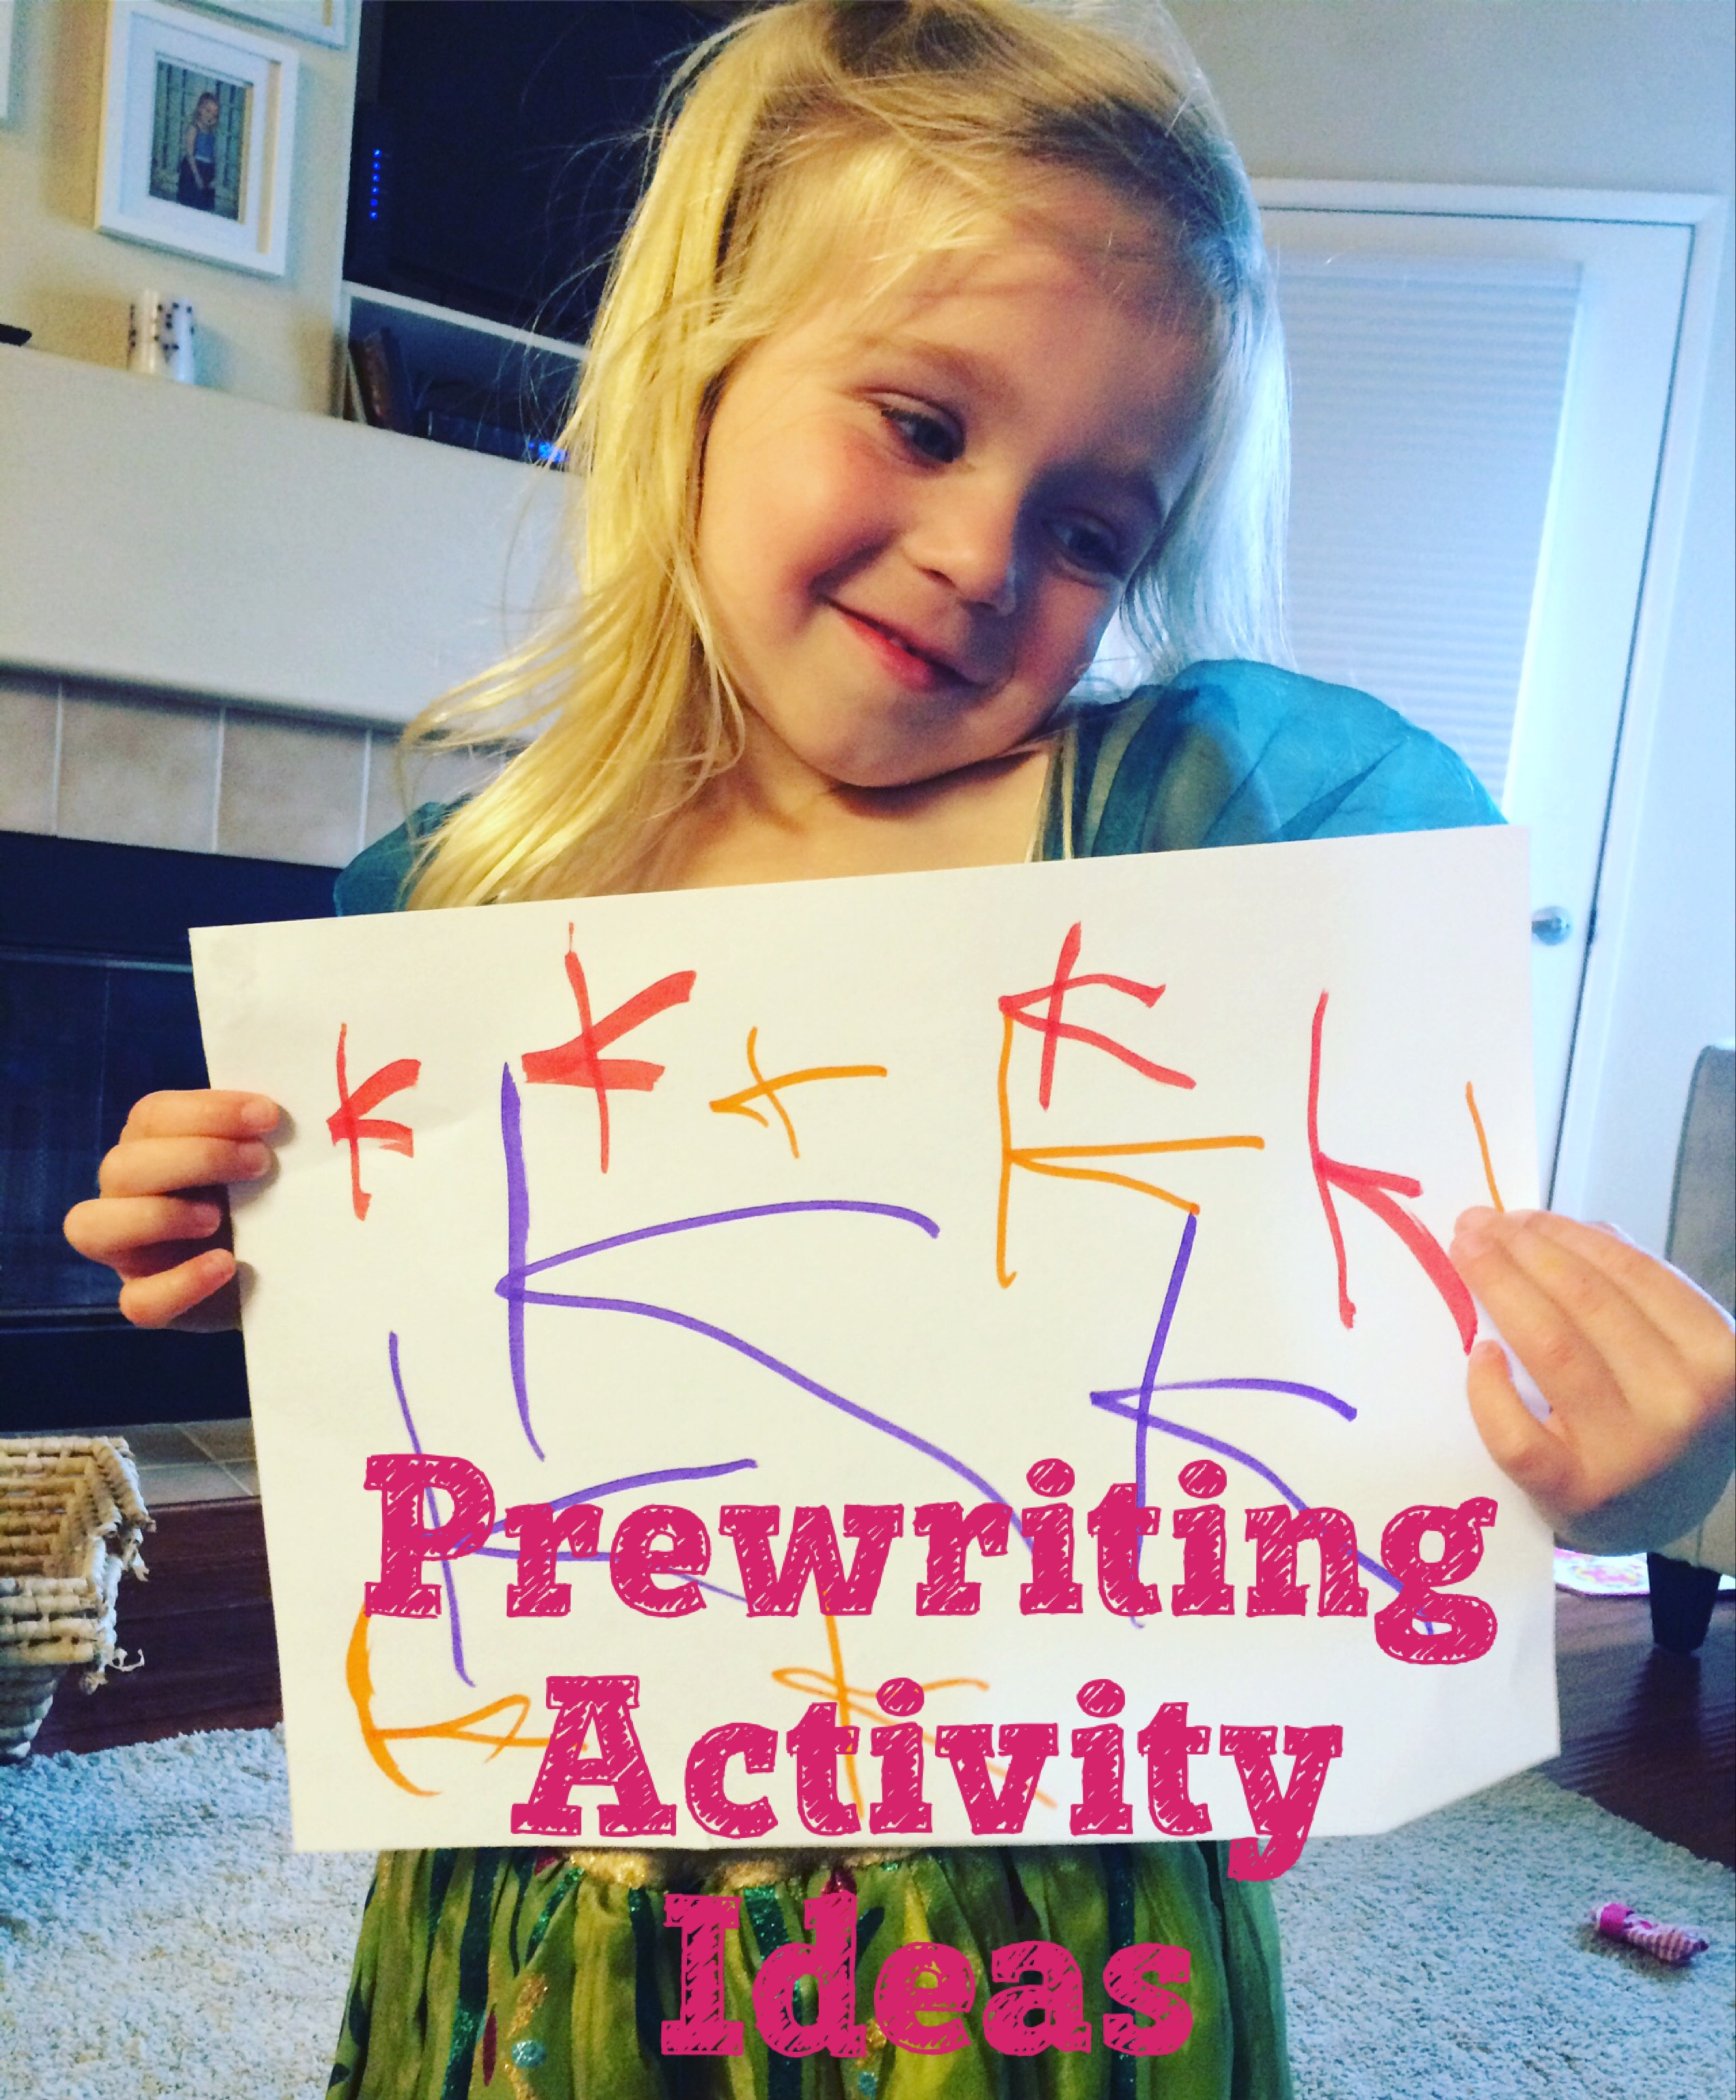 Pre Writing Activity Ideas To Help Prepare For Kindergarten Preferred Therapy Toys